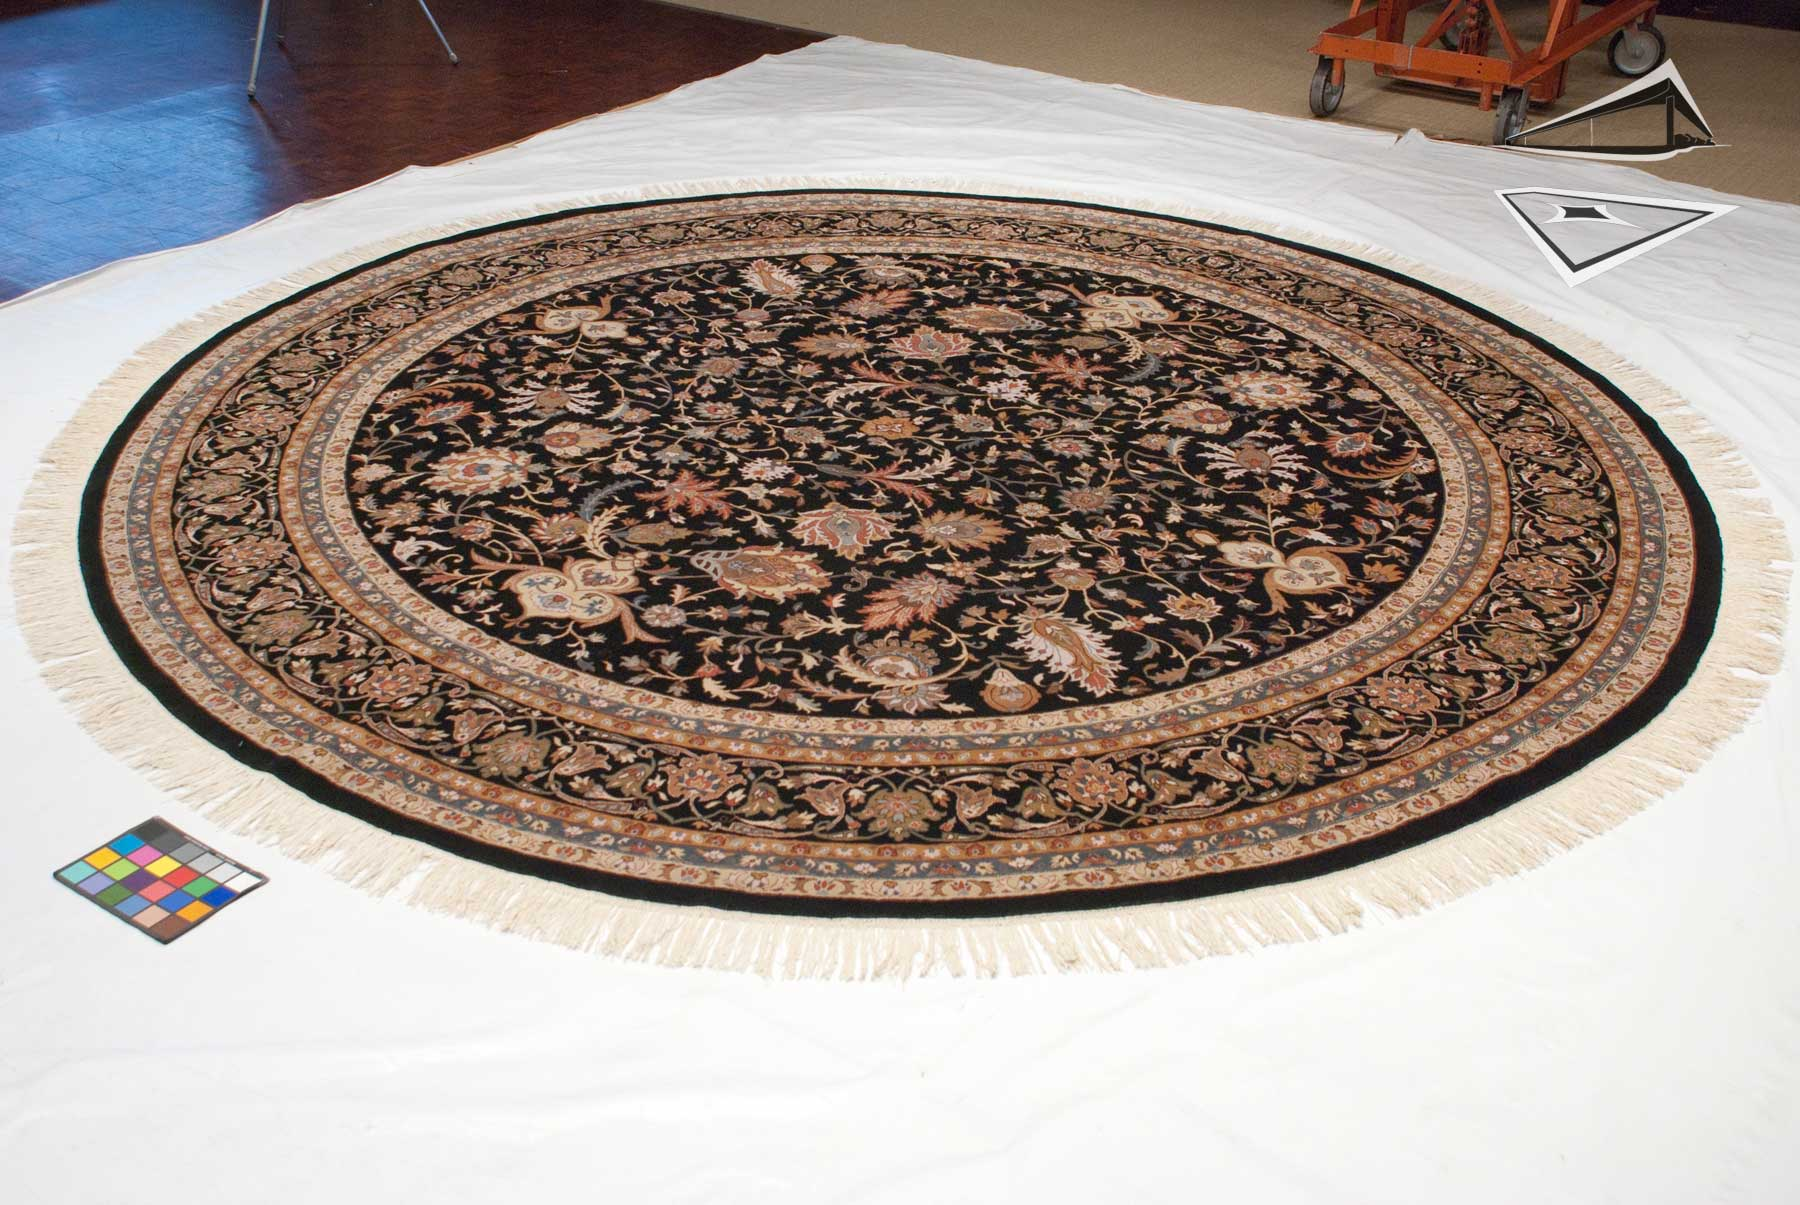 Isfahan design round rug 12 39 x 12 39 for What size rug for 12x12 room